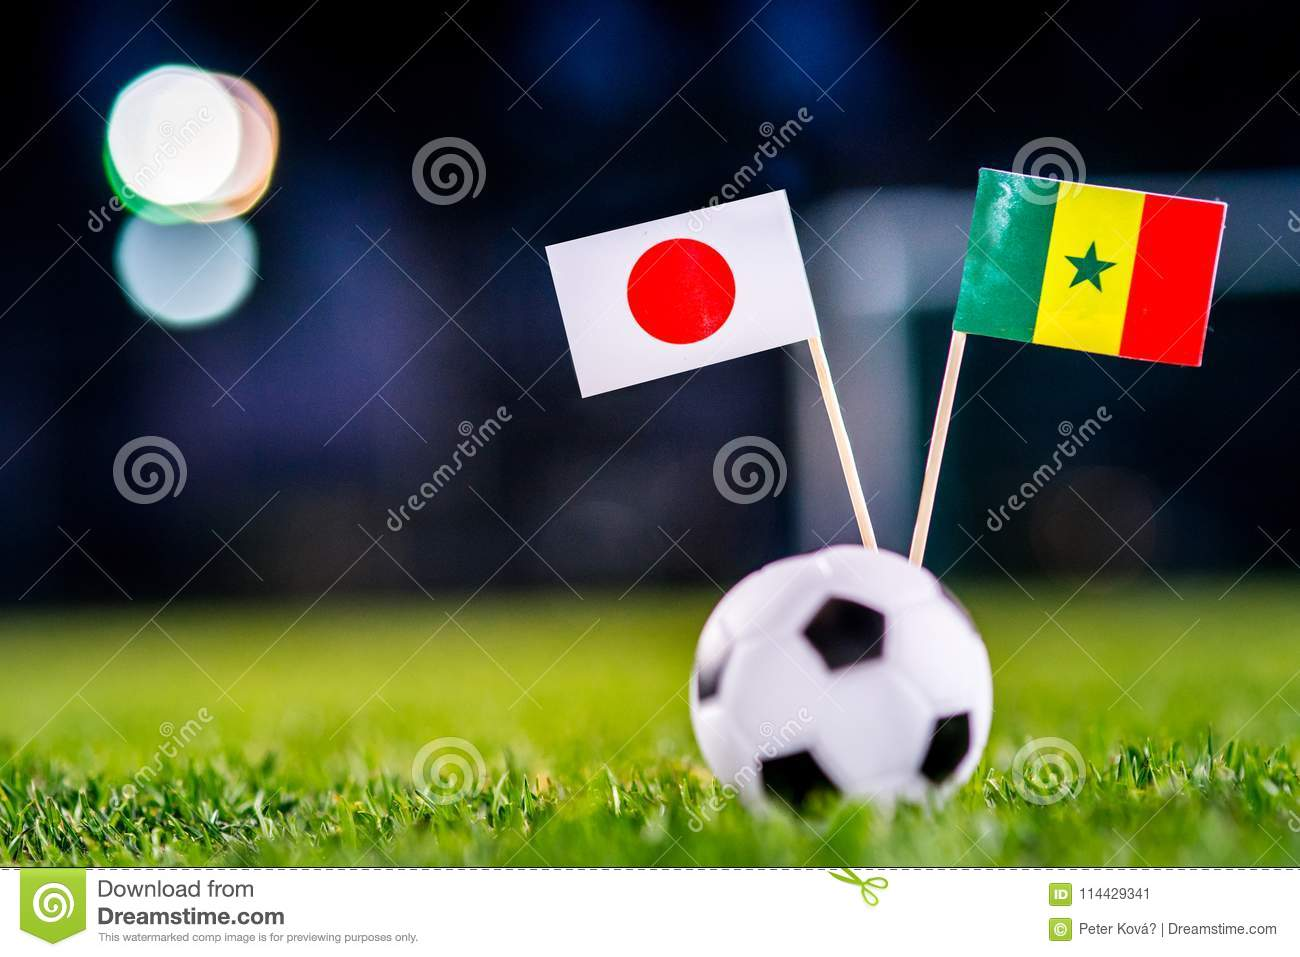 Japan - Senegal, Group H, Sunday, 24. June, Football, World Cup, Russia 2018, National Flags on green grass, white football ball